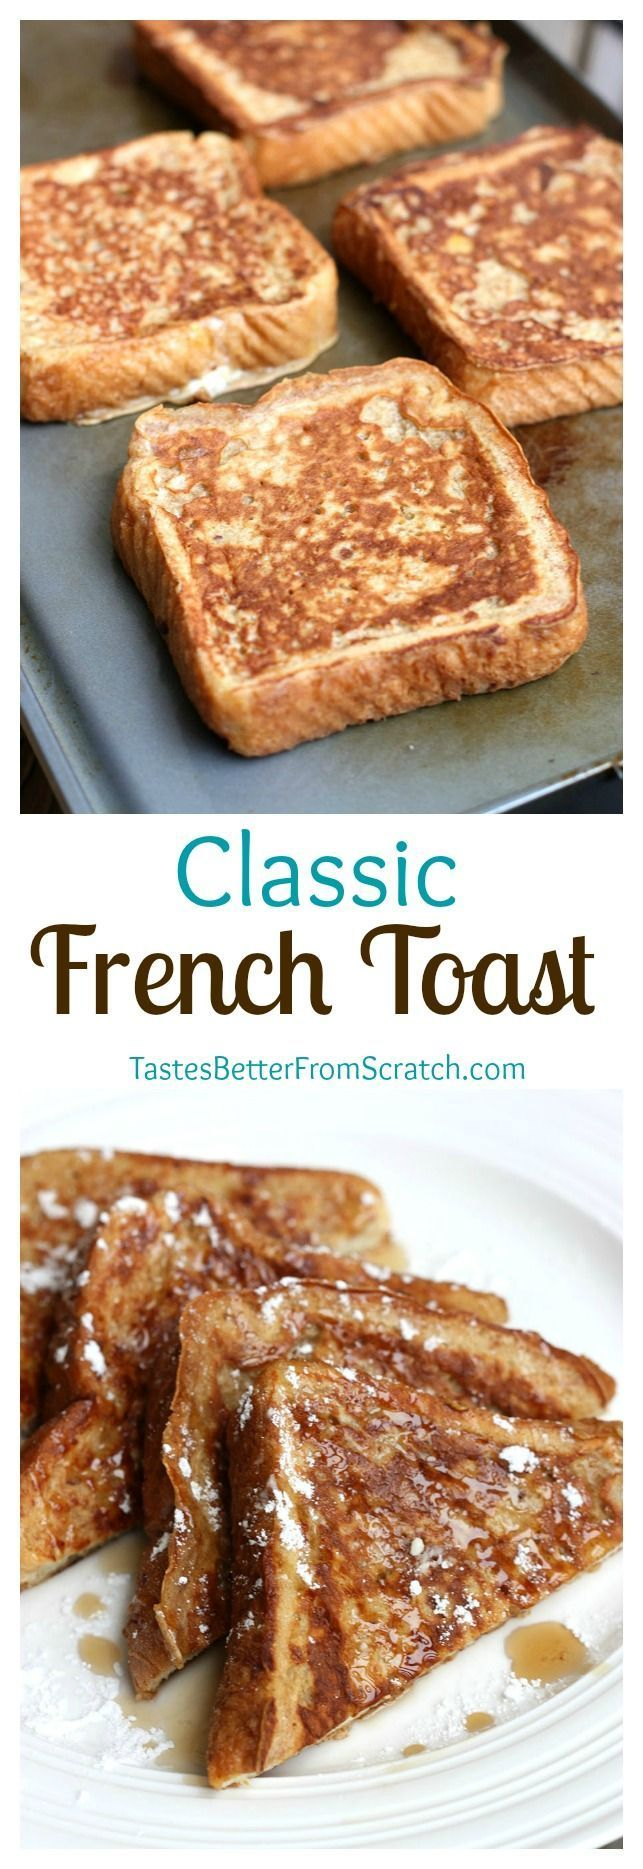 Classic French Toast Recipe With A Secret Ingredient That Makes Them  Perfectly Fluffy! One Of